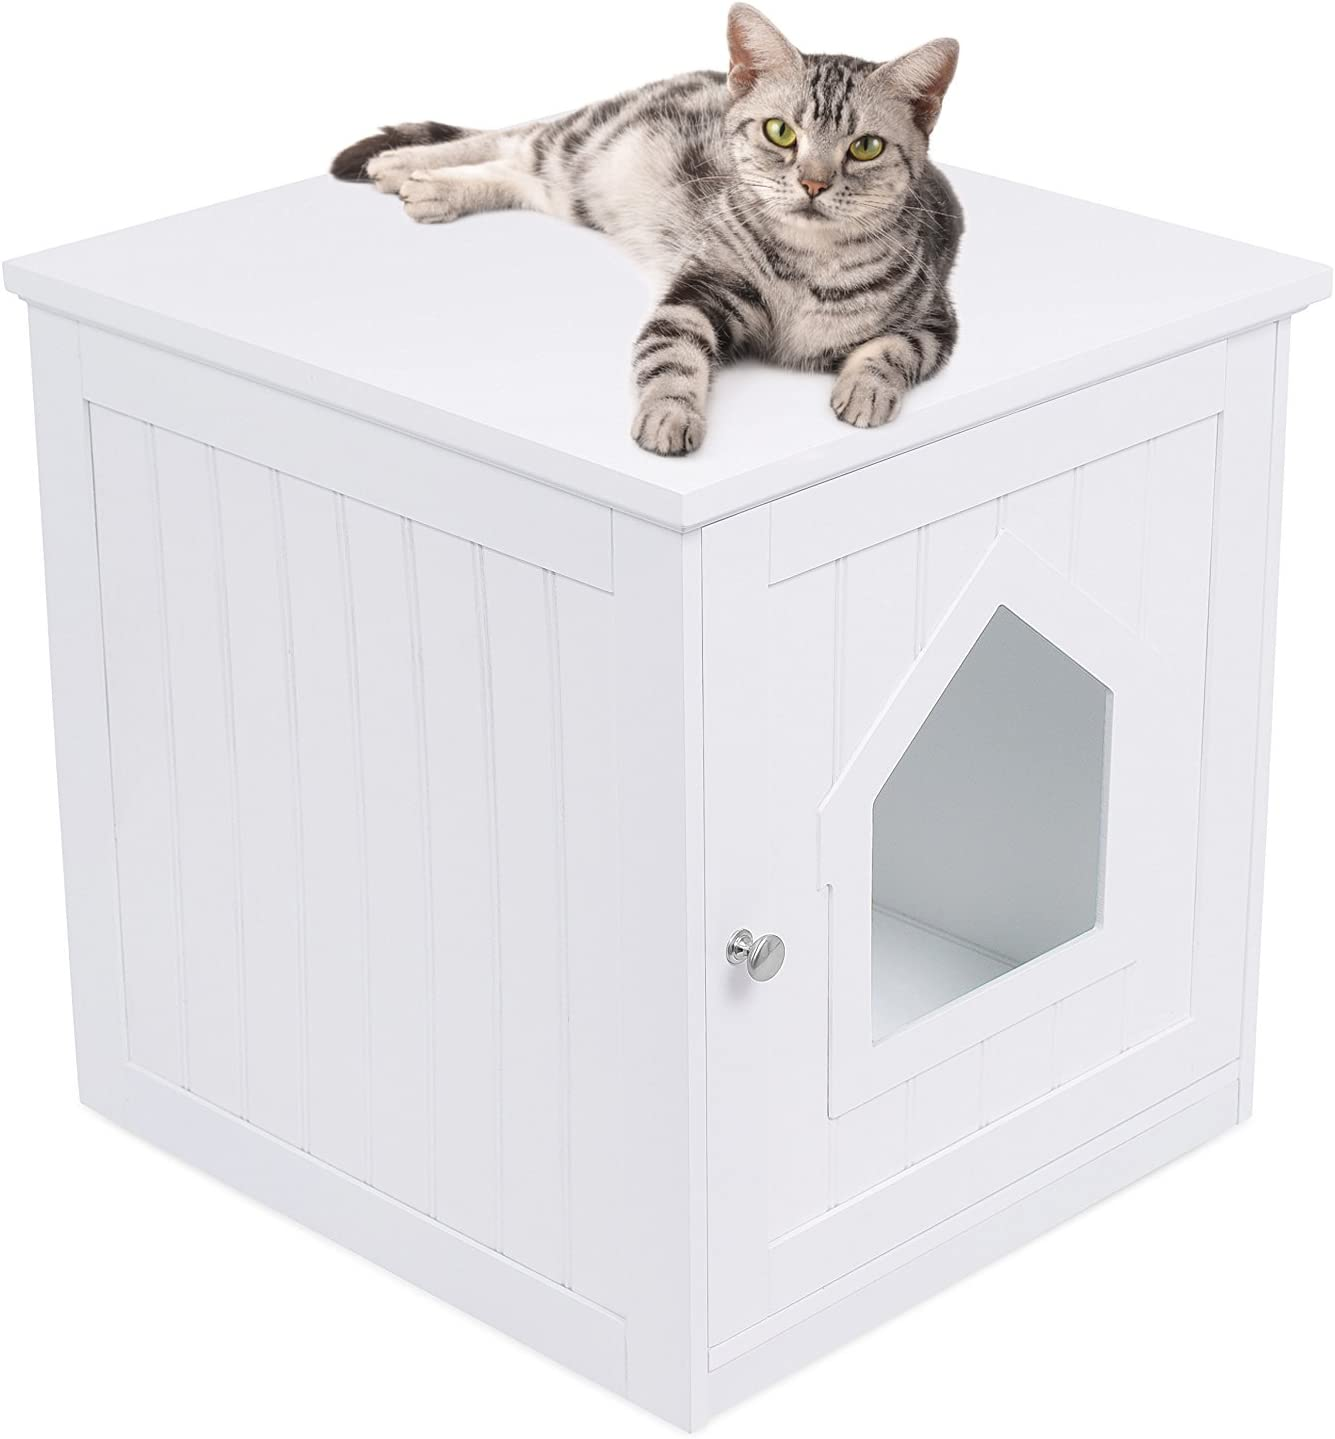 Birdrock Home Decorative Cat House Side Table Cat Home Nightstand Indoor Pet Crate Litter Box Enclosure Hooded Hidden Pet Box Cats Furniture Cabinet Kitty Washroom White Pet Supplies